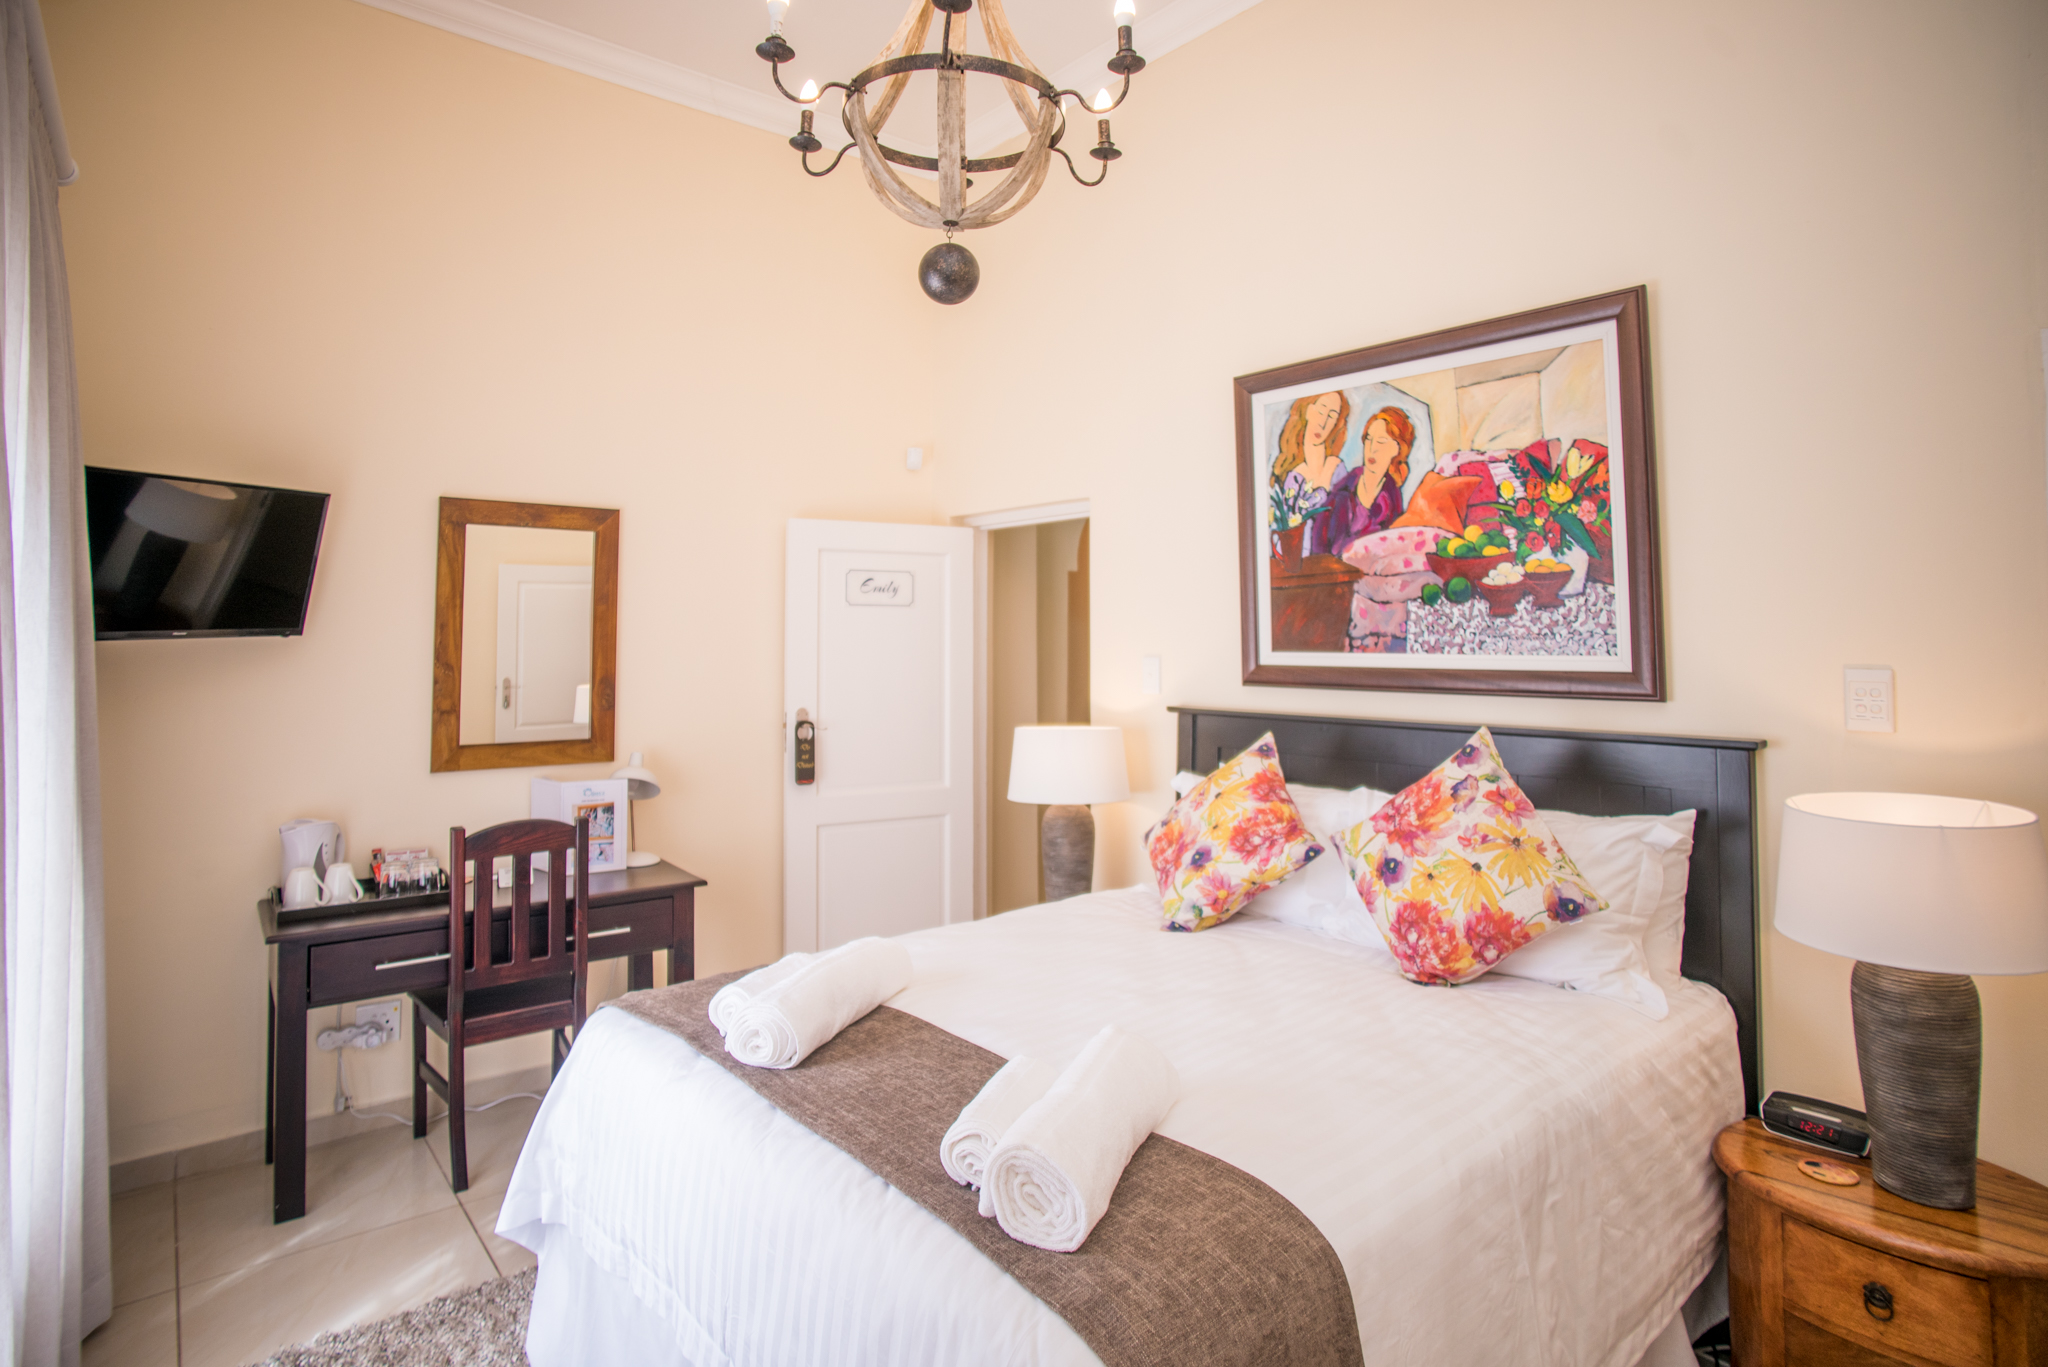 Olivers Bed & Breakfast - Emily Room 1